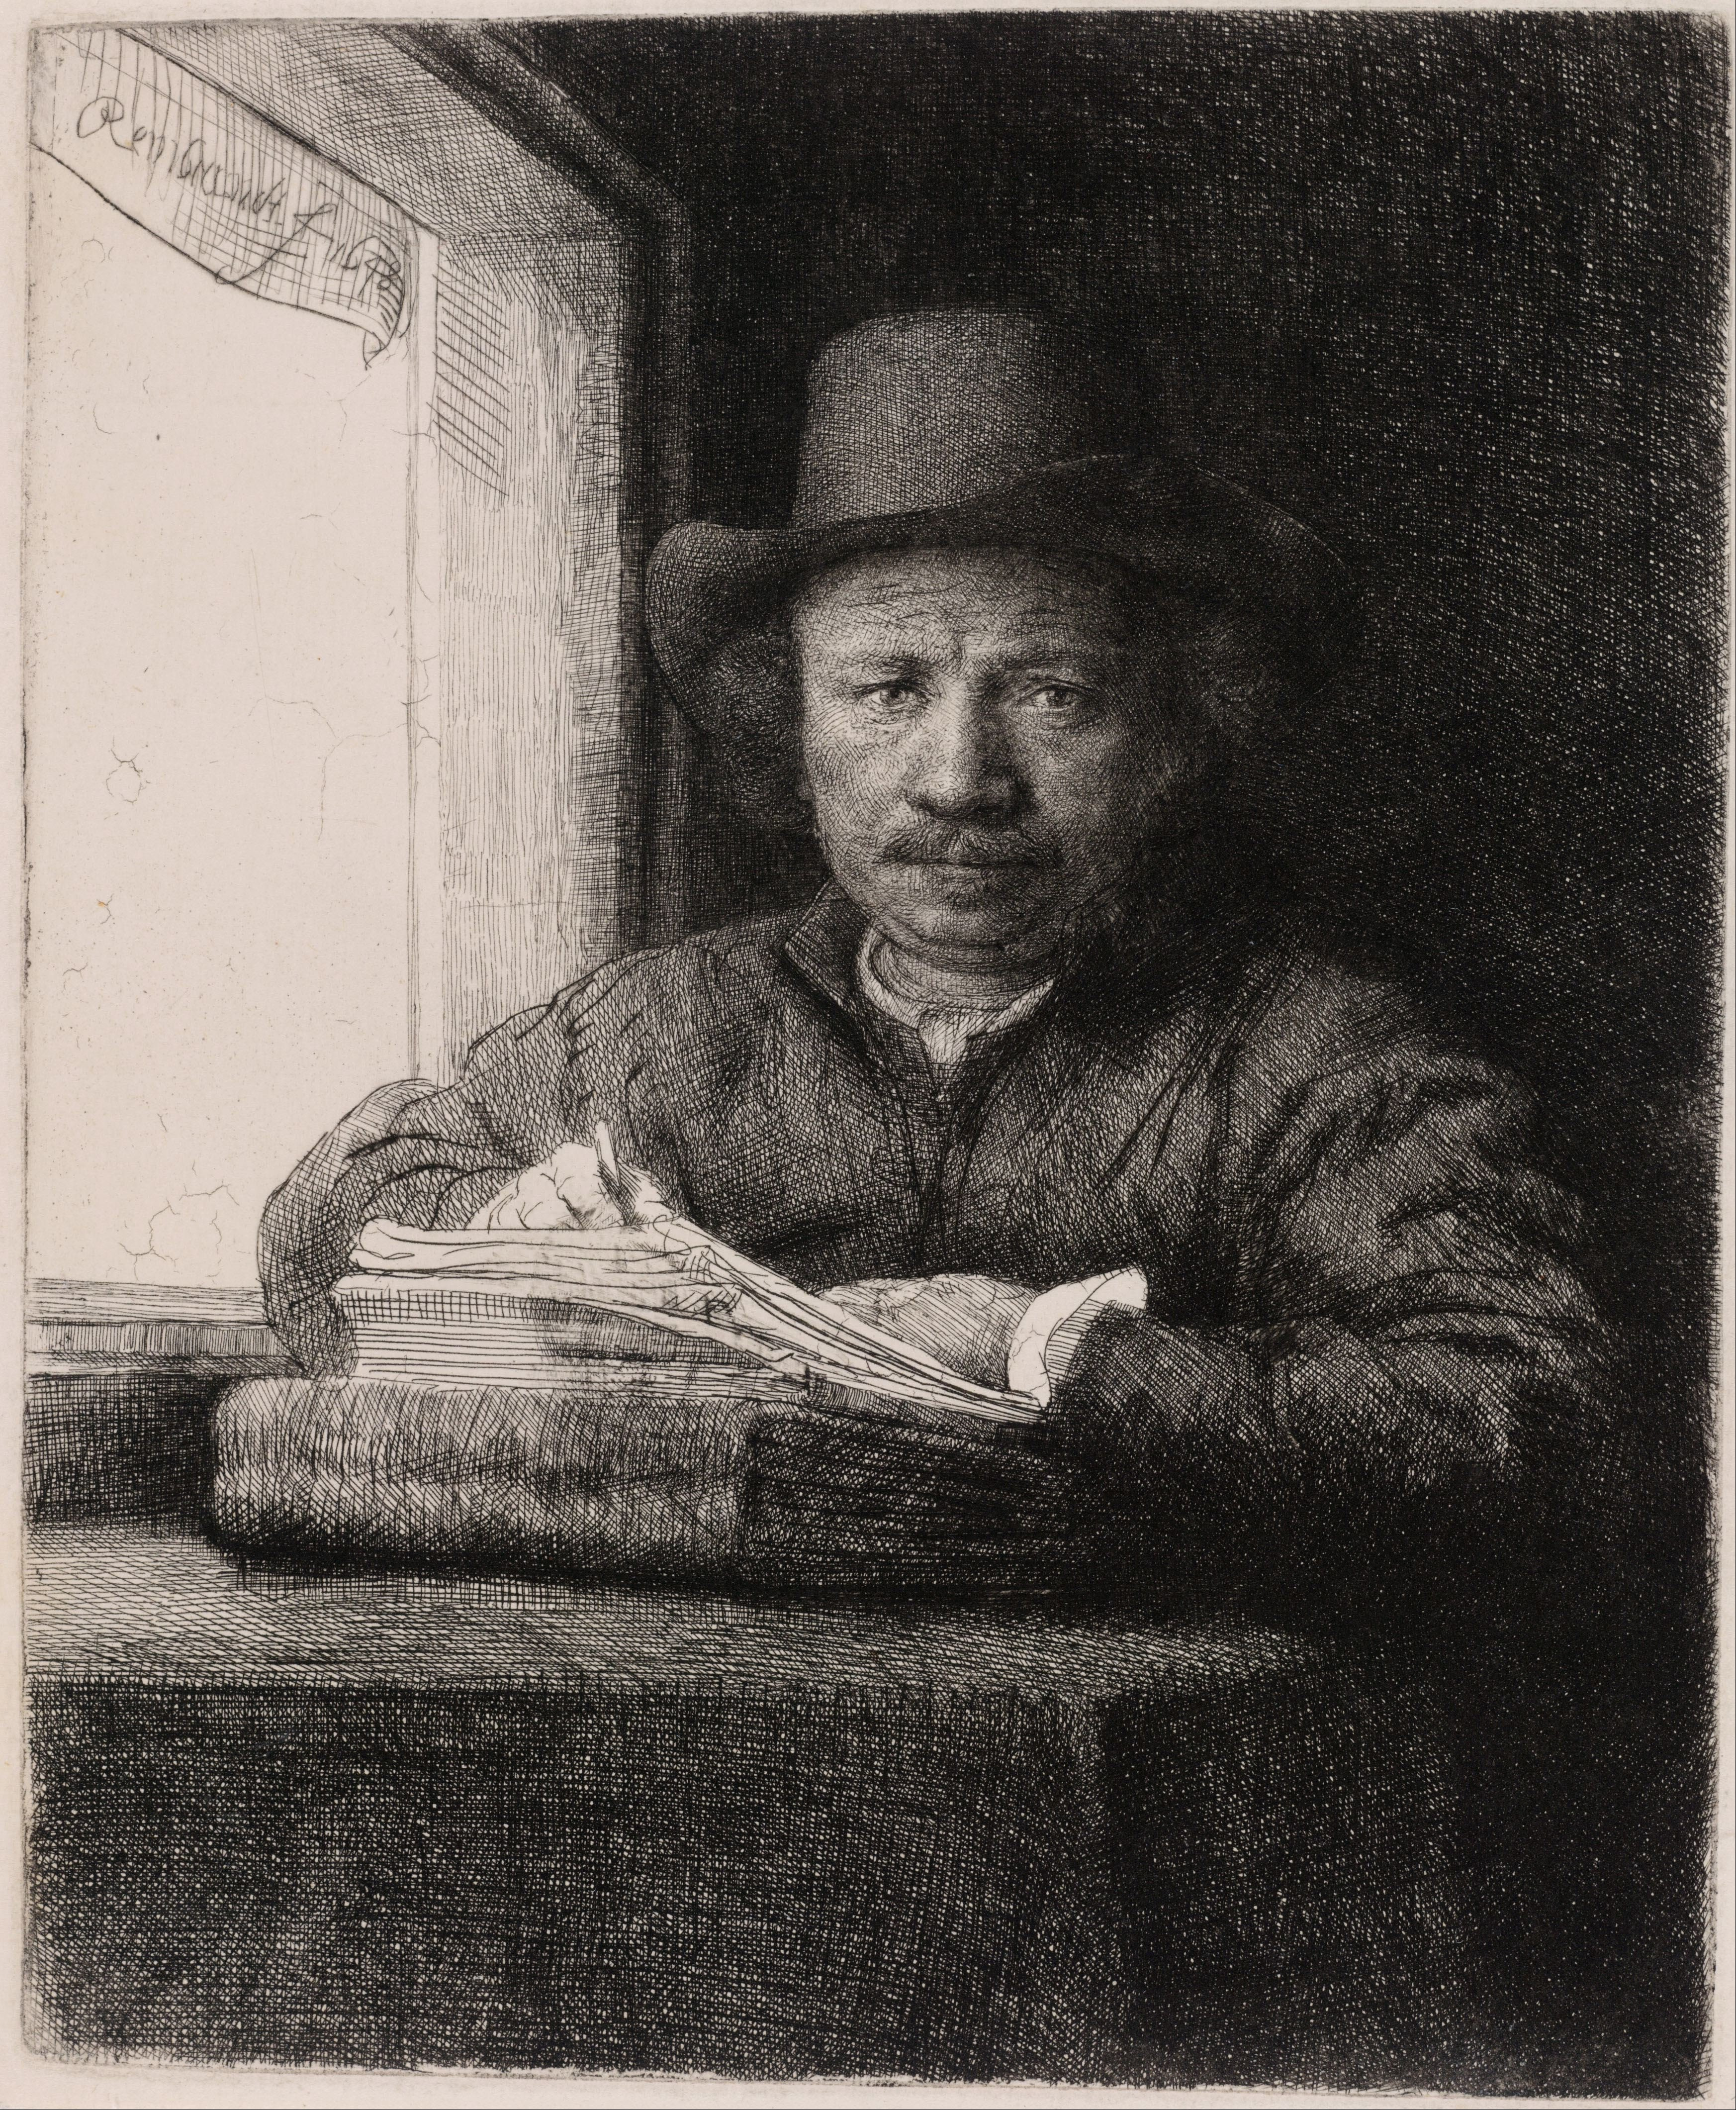 rembrandt van rign essay This paper discusses the master painter, rembrandt van rijn, his painting the raising of lazarus, and the social and religious issues of his time.